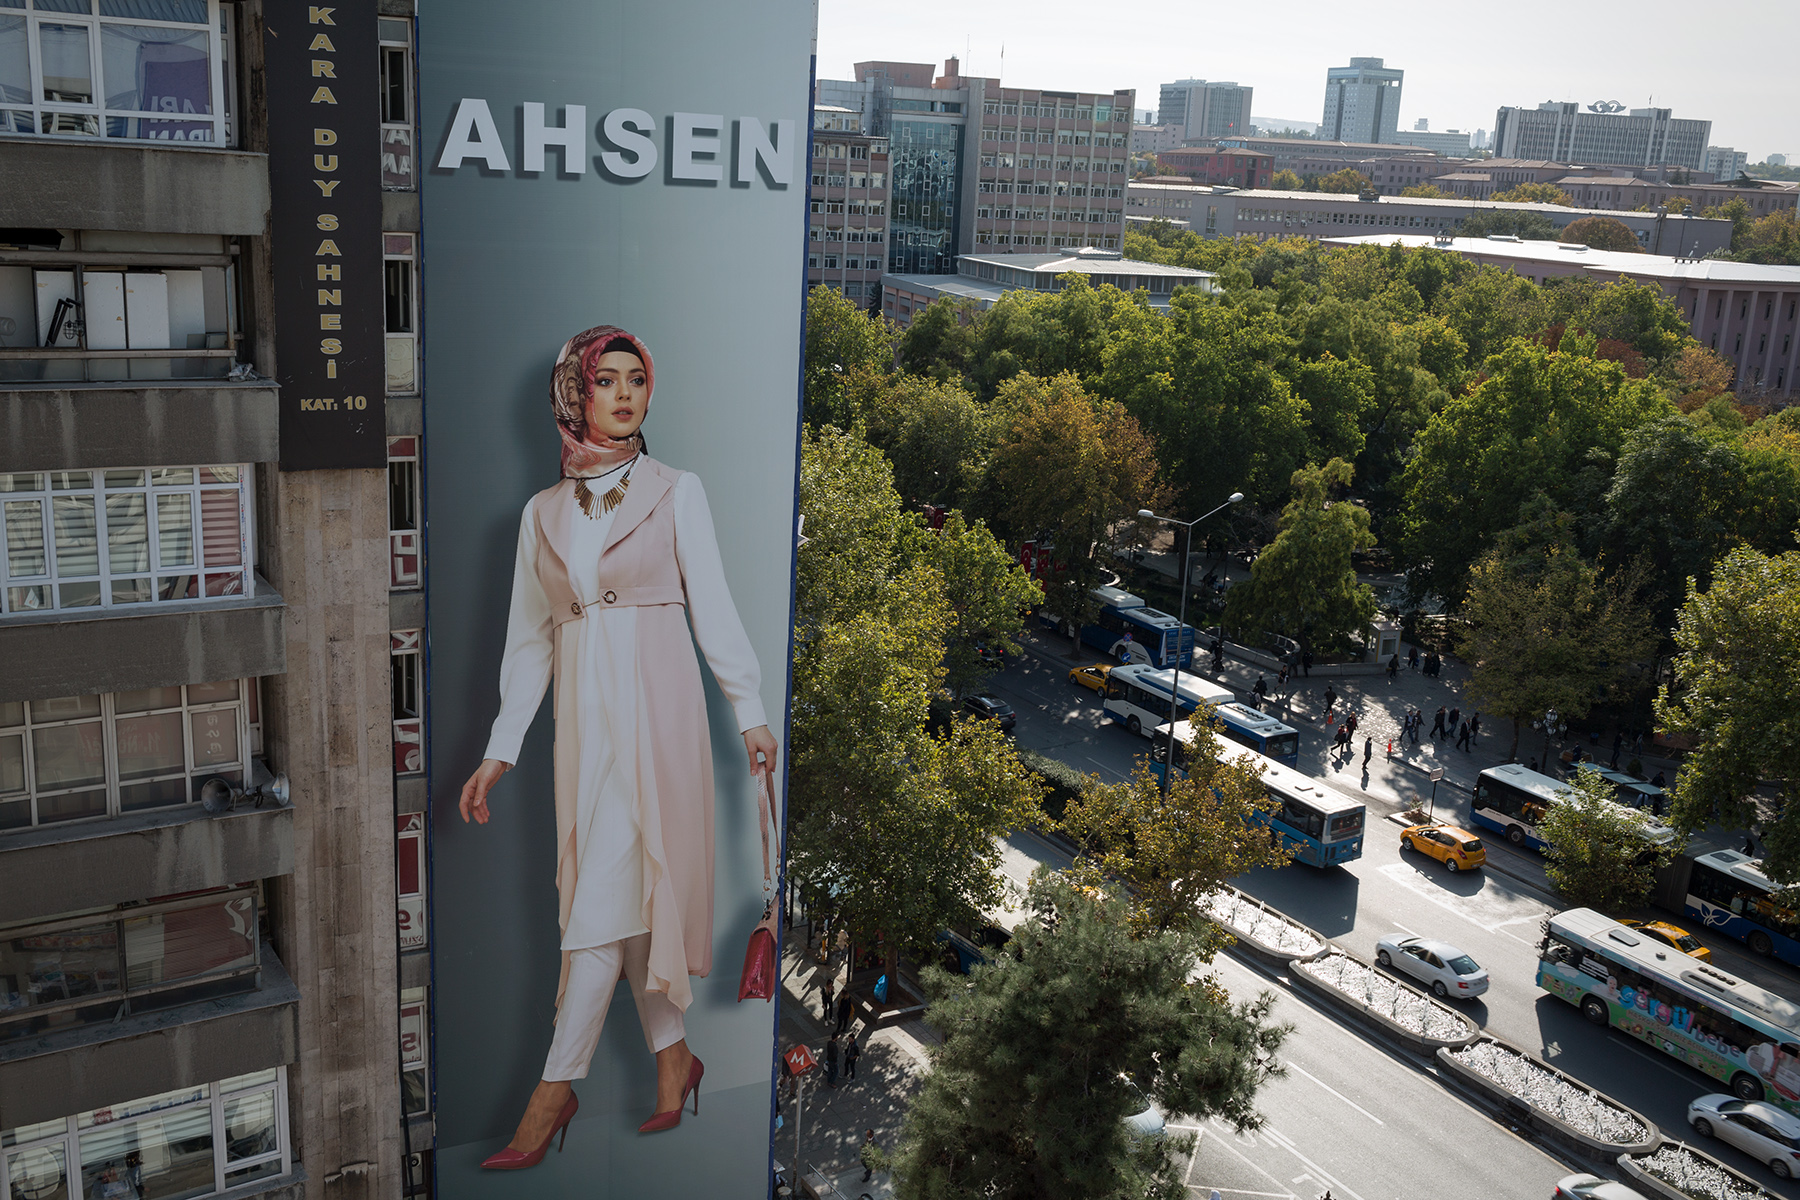 Turkey, 2017 - Advertising in Ankara for the Islamic fashion, a growing phenomenon in Turkey.